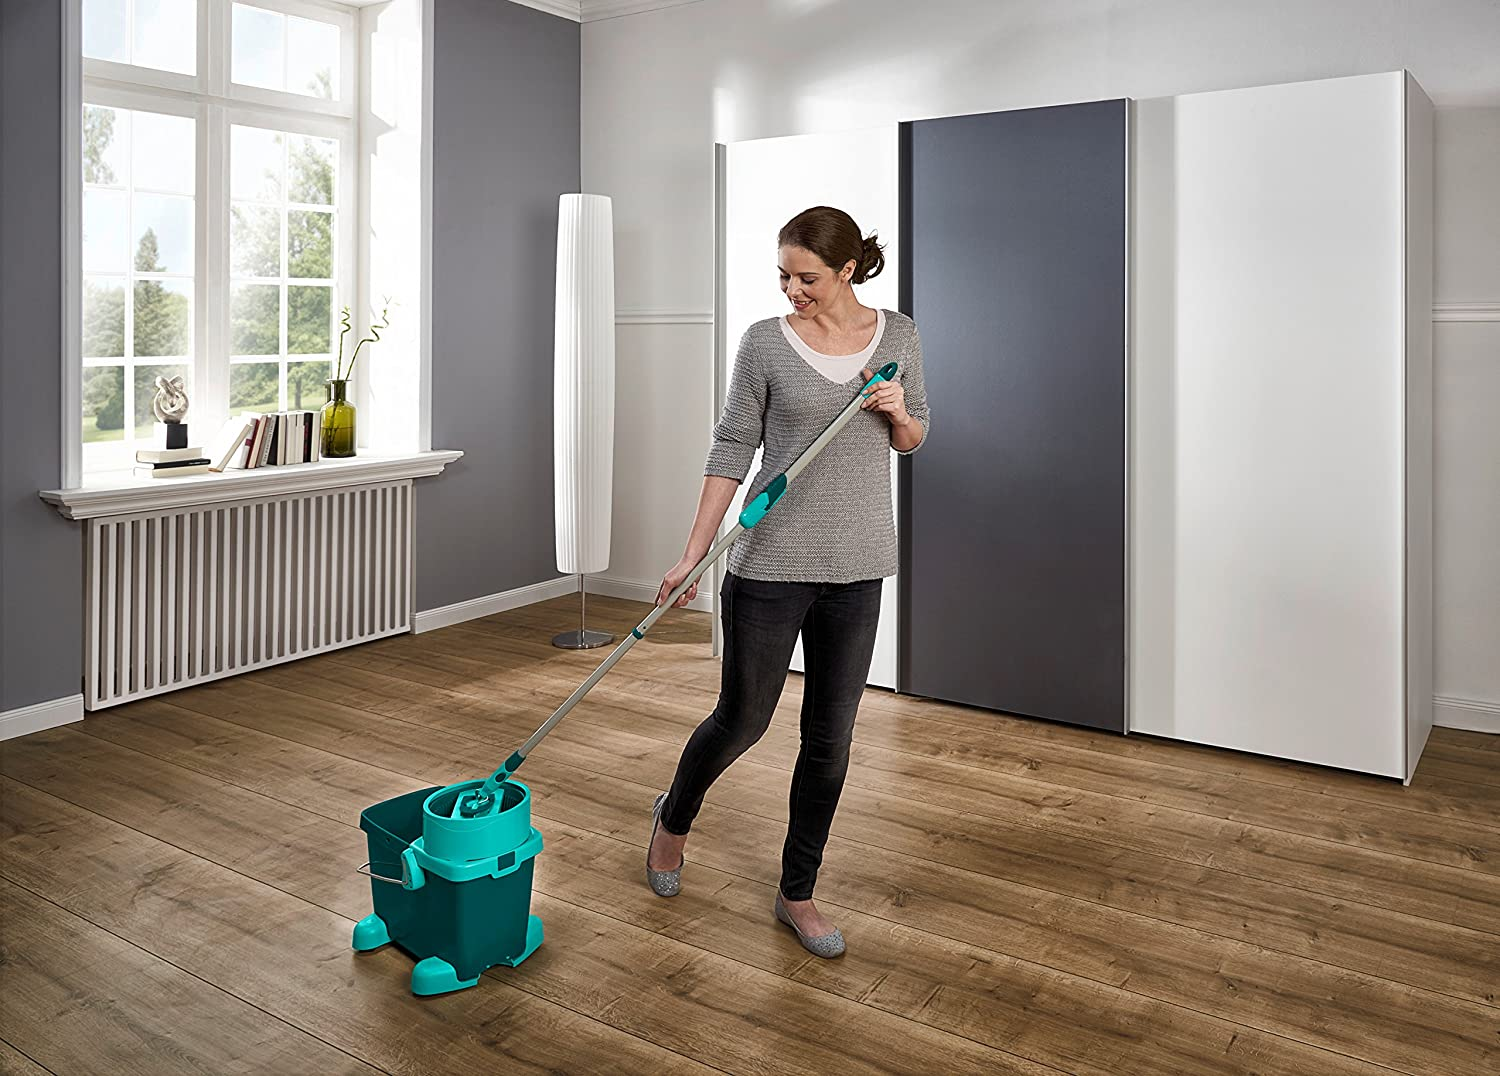 Leifheit Clean Twist Medium Mop And Wheeled Bucket Set, Moisture Controlled Spin; Faster Cleaning; Easy-Steer Micro Fibre Head with 360 Degree Joint; Mop 33 cm Wide; Spin Mop